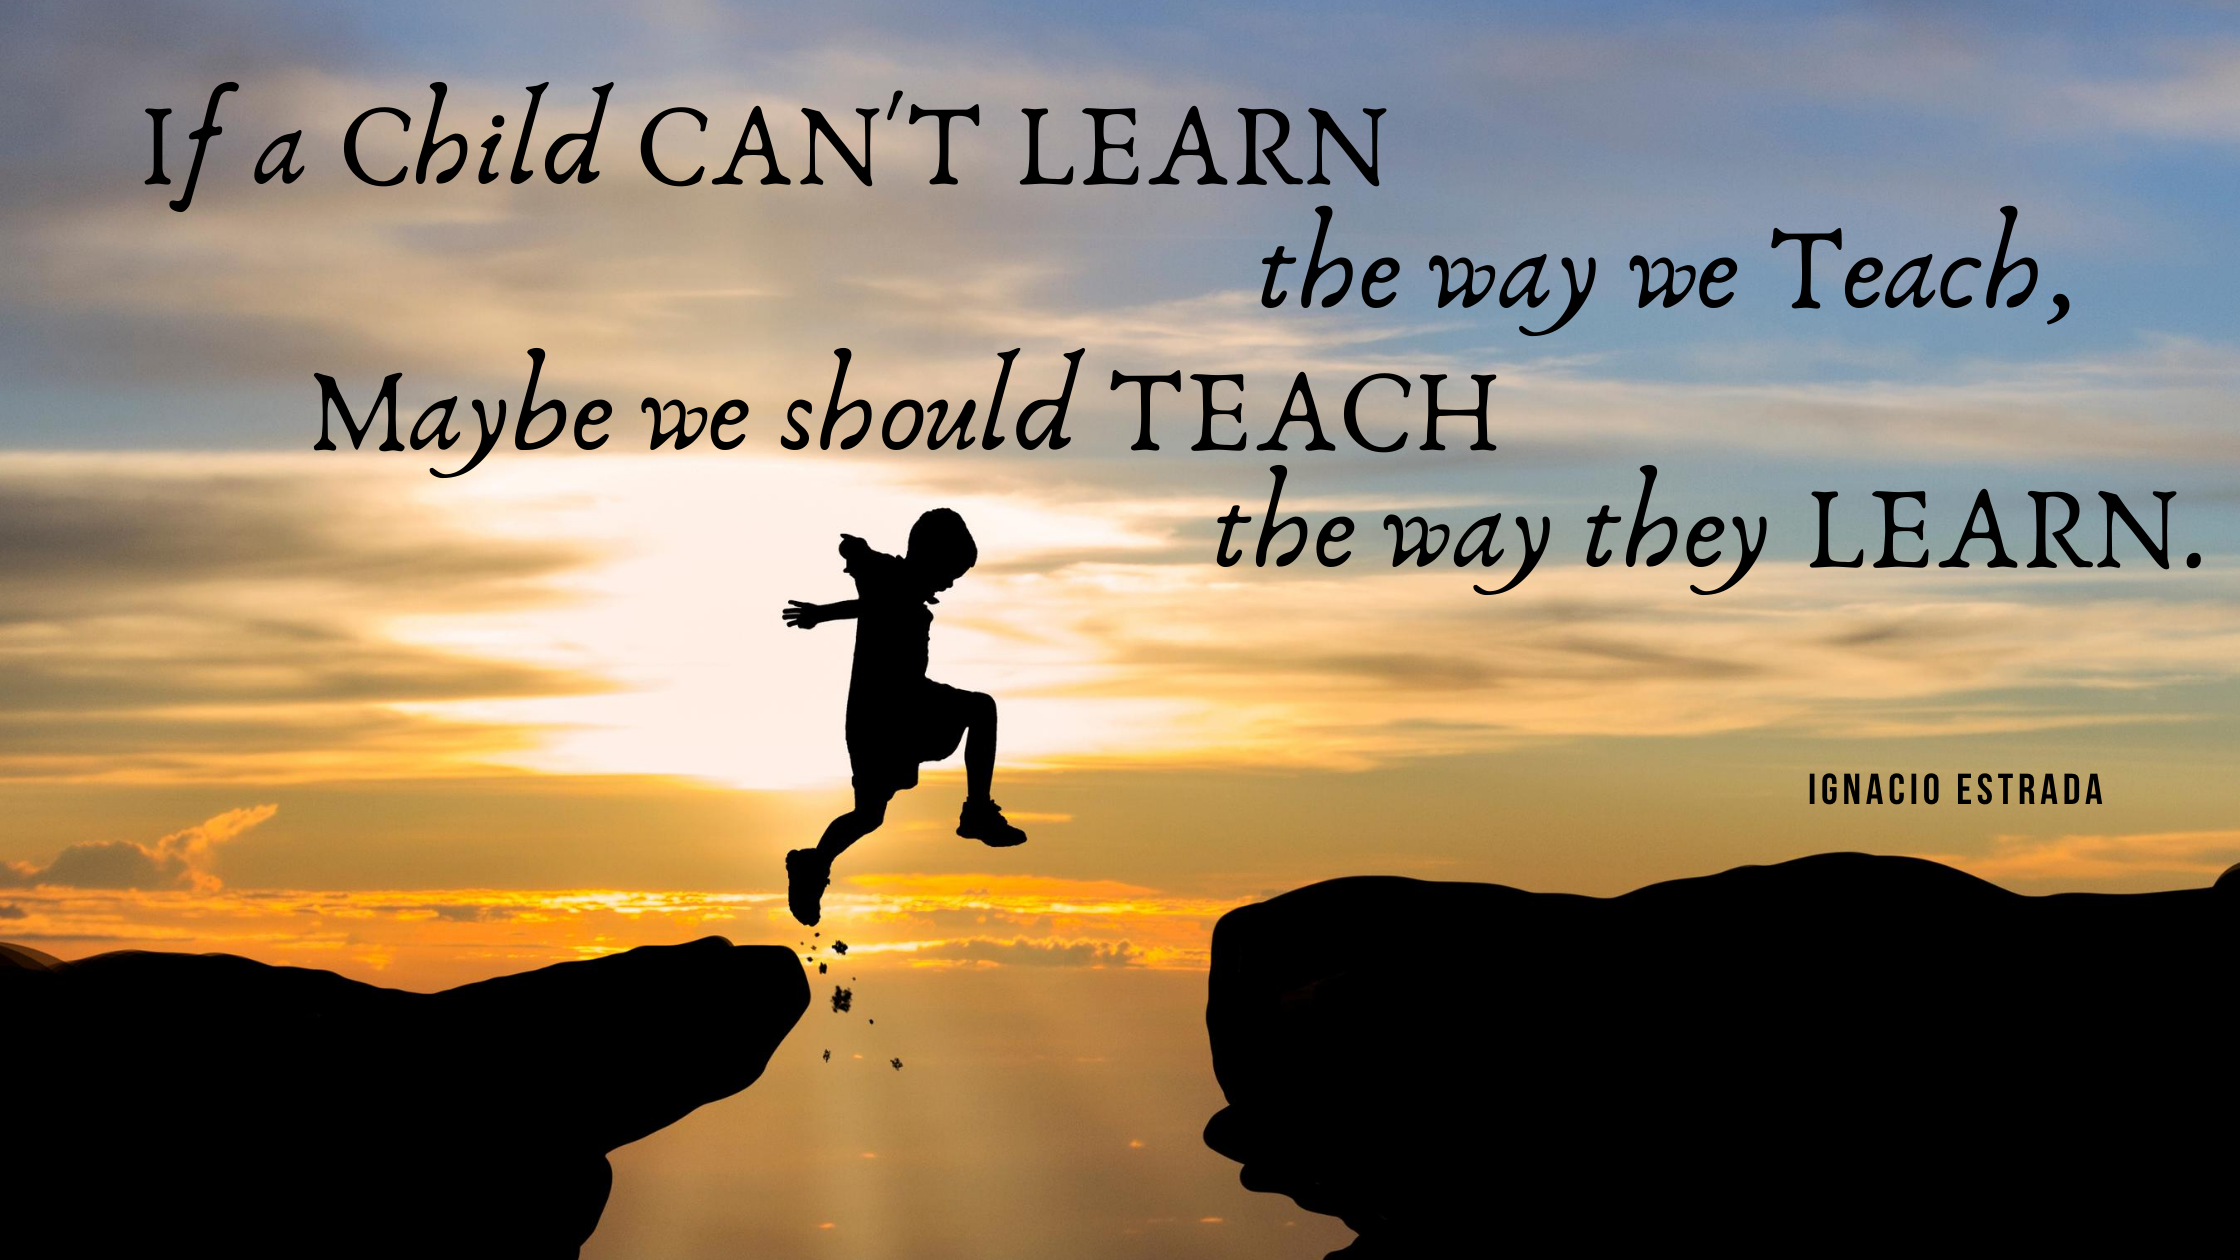 If a child can't learn